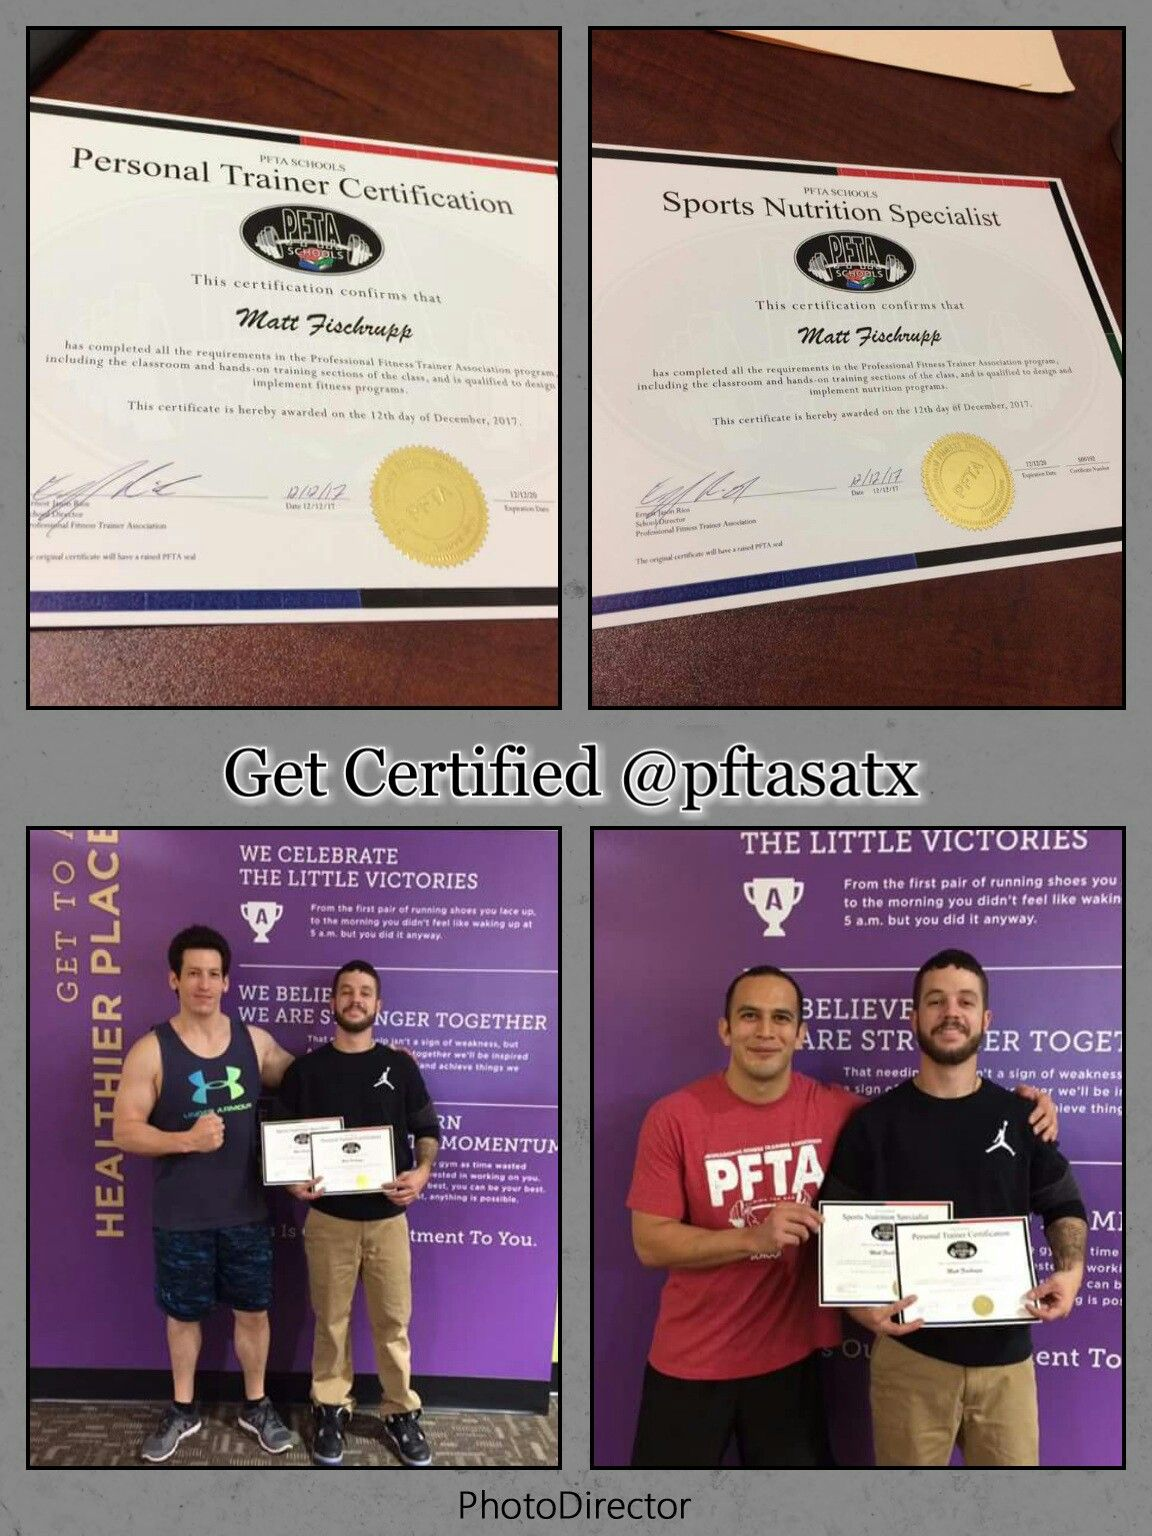 Get Certified In Personal Training With Hands On Experience At Pfta